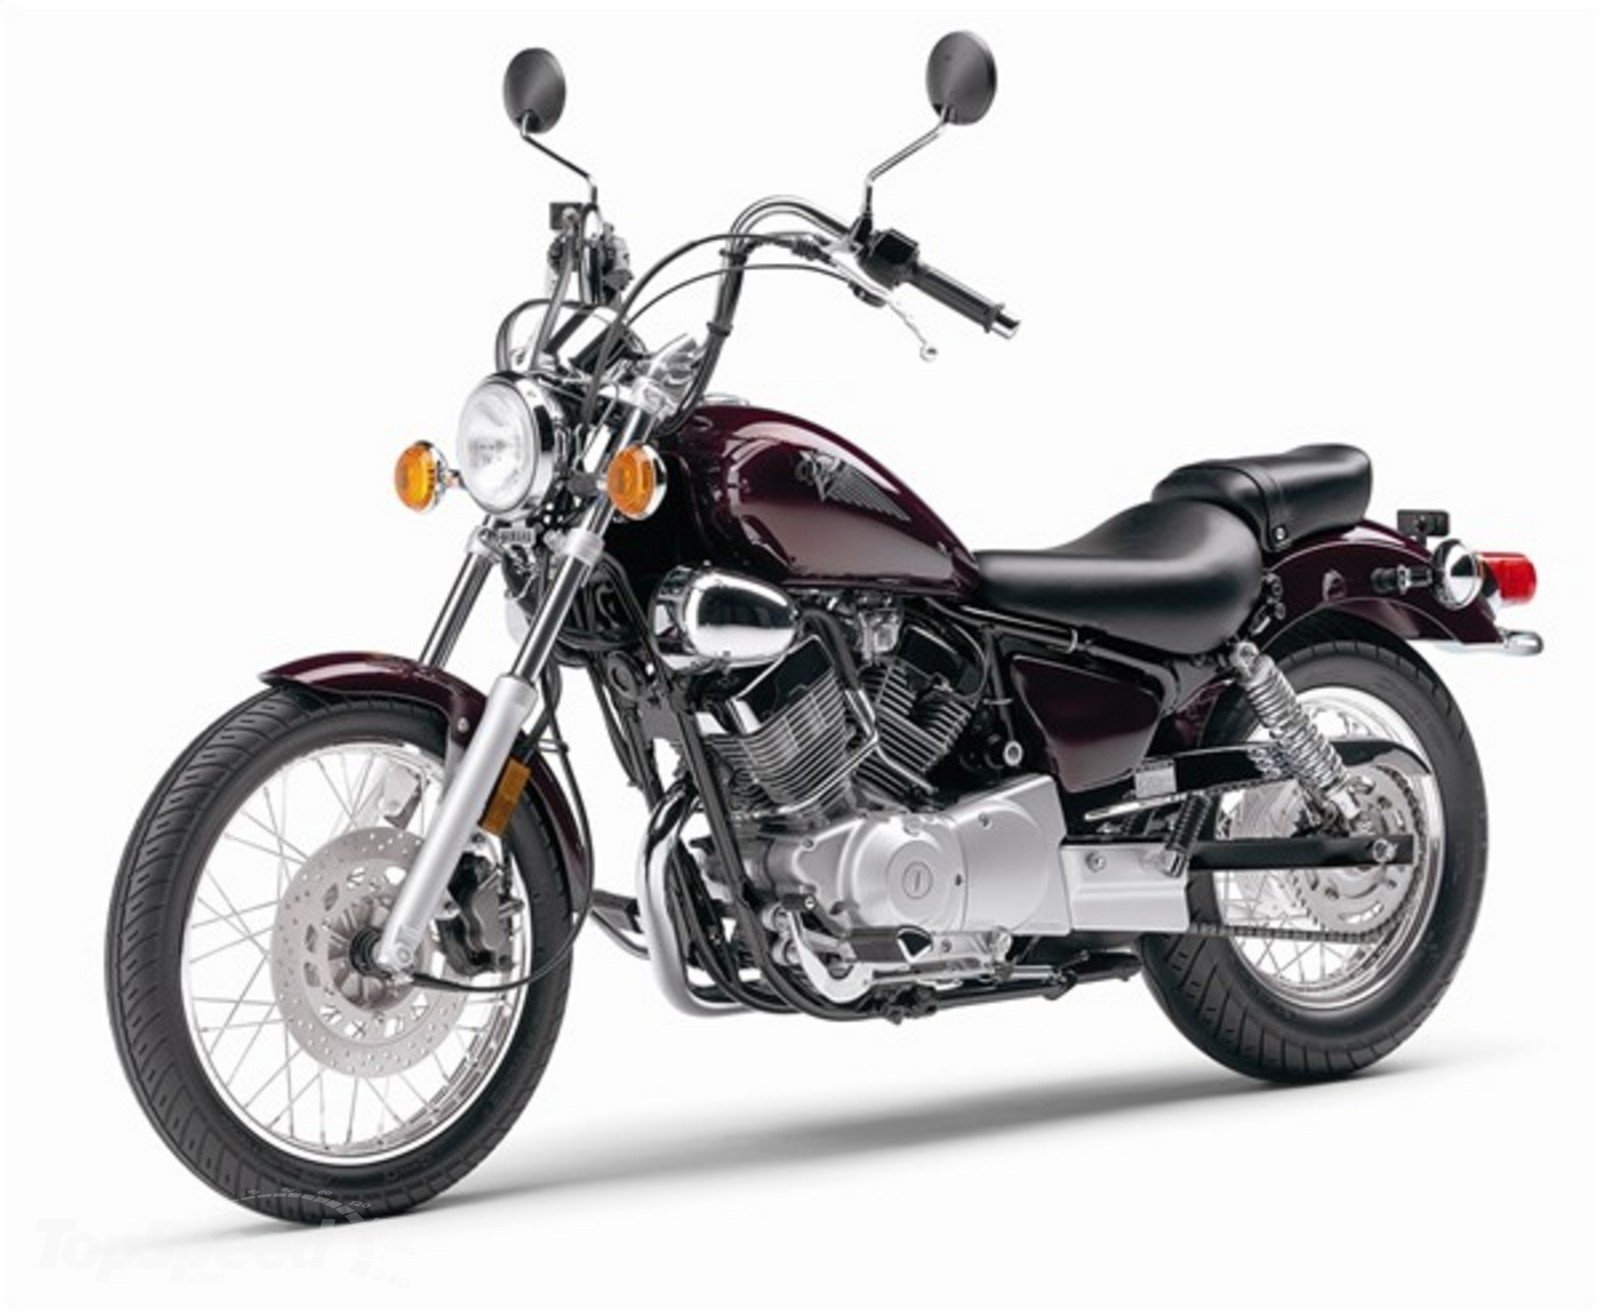 2007 yamaha virago 250 review top speed. Black Bedroom Furniture Sets. Home Design Ideas